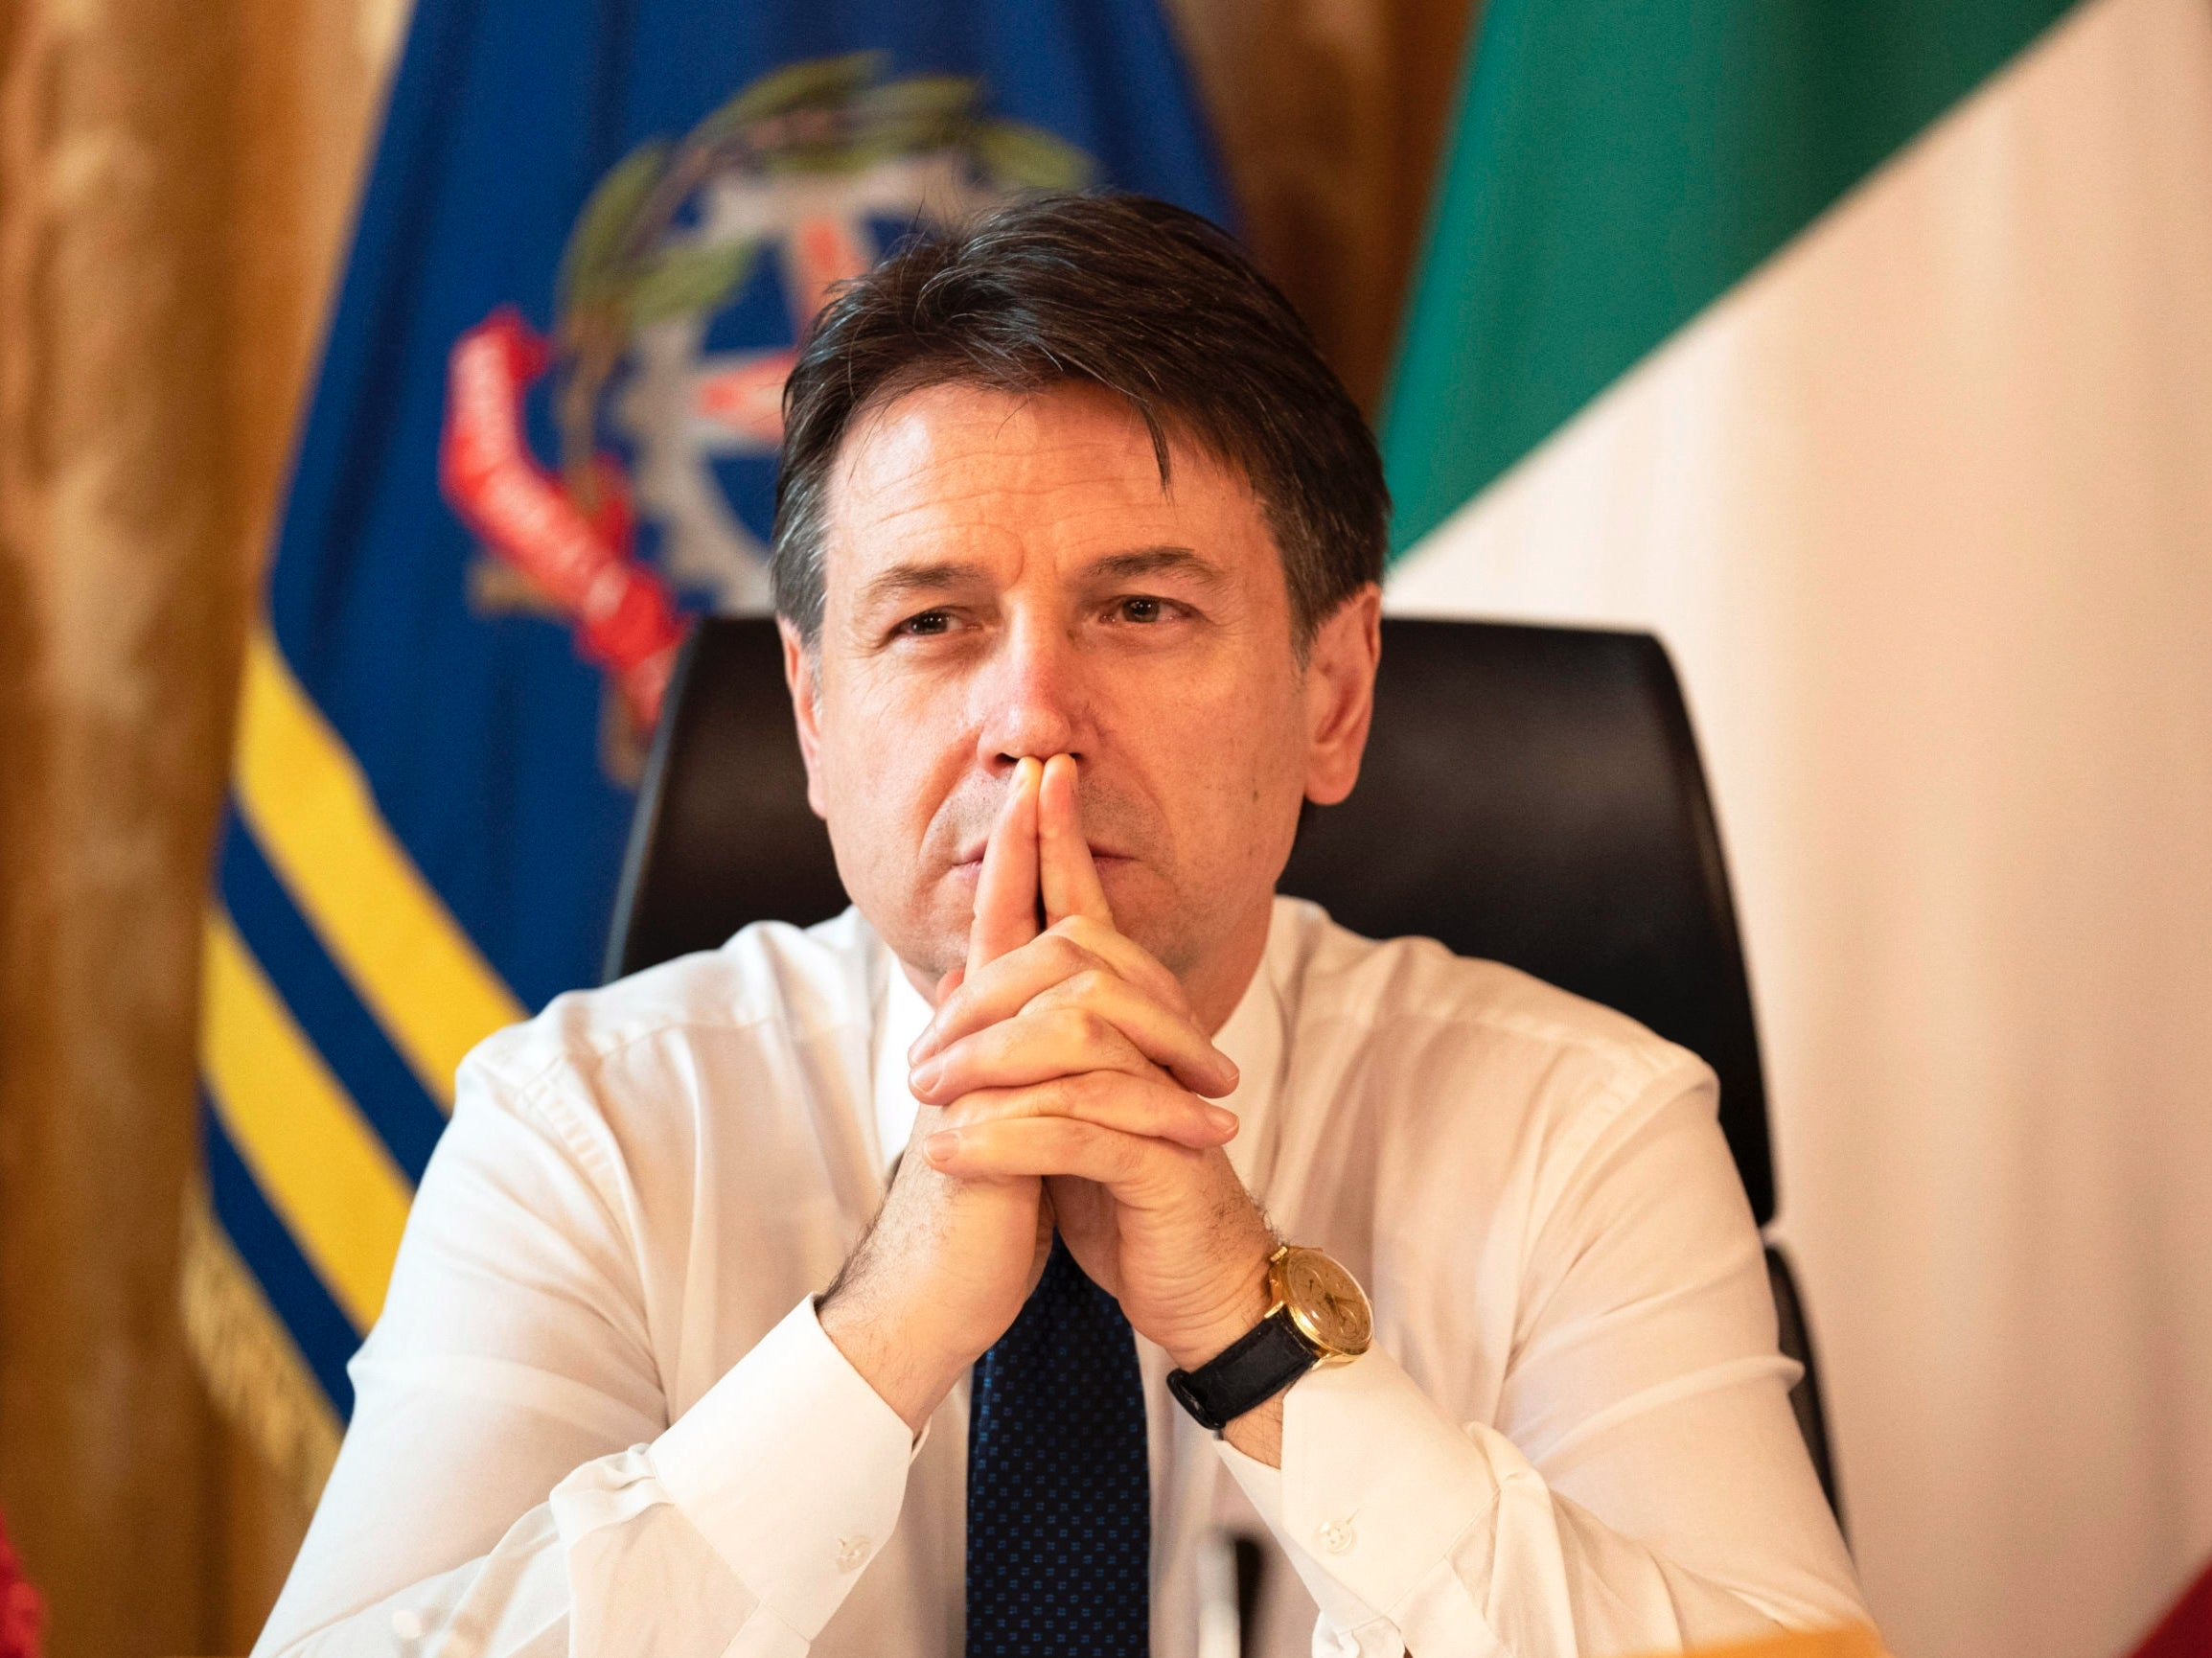 Italian prime minister Giuseppe Conte resigns in tactical bid to form new coalition - independent